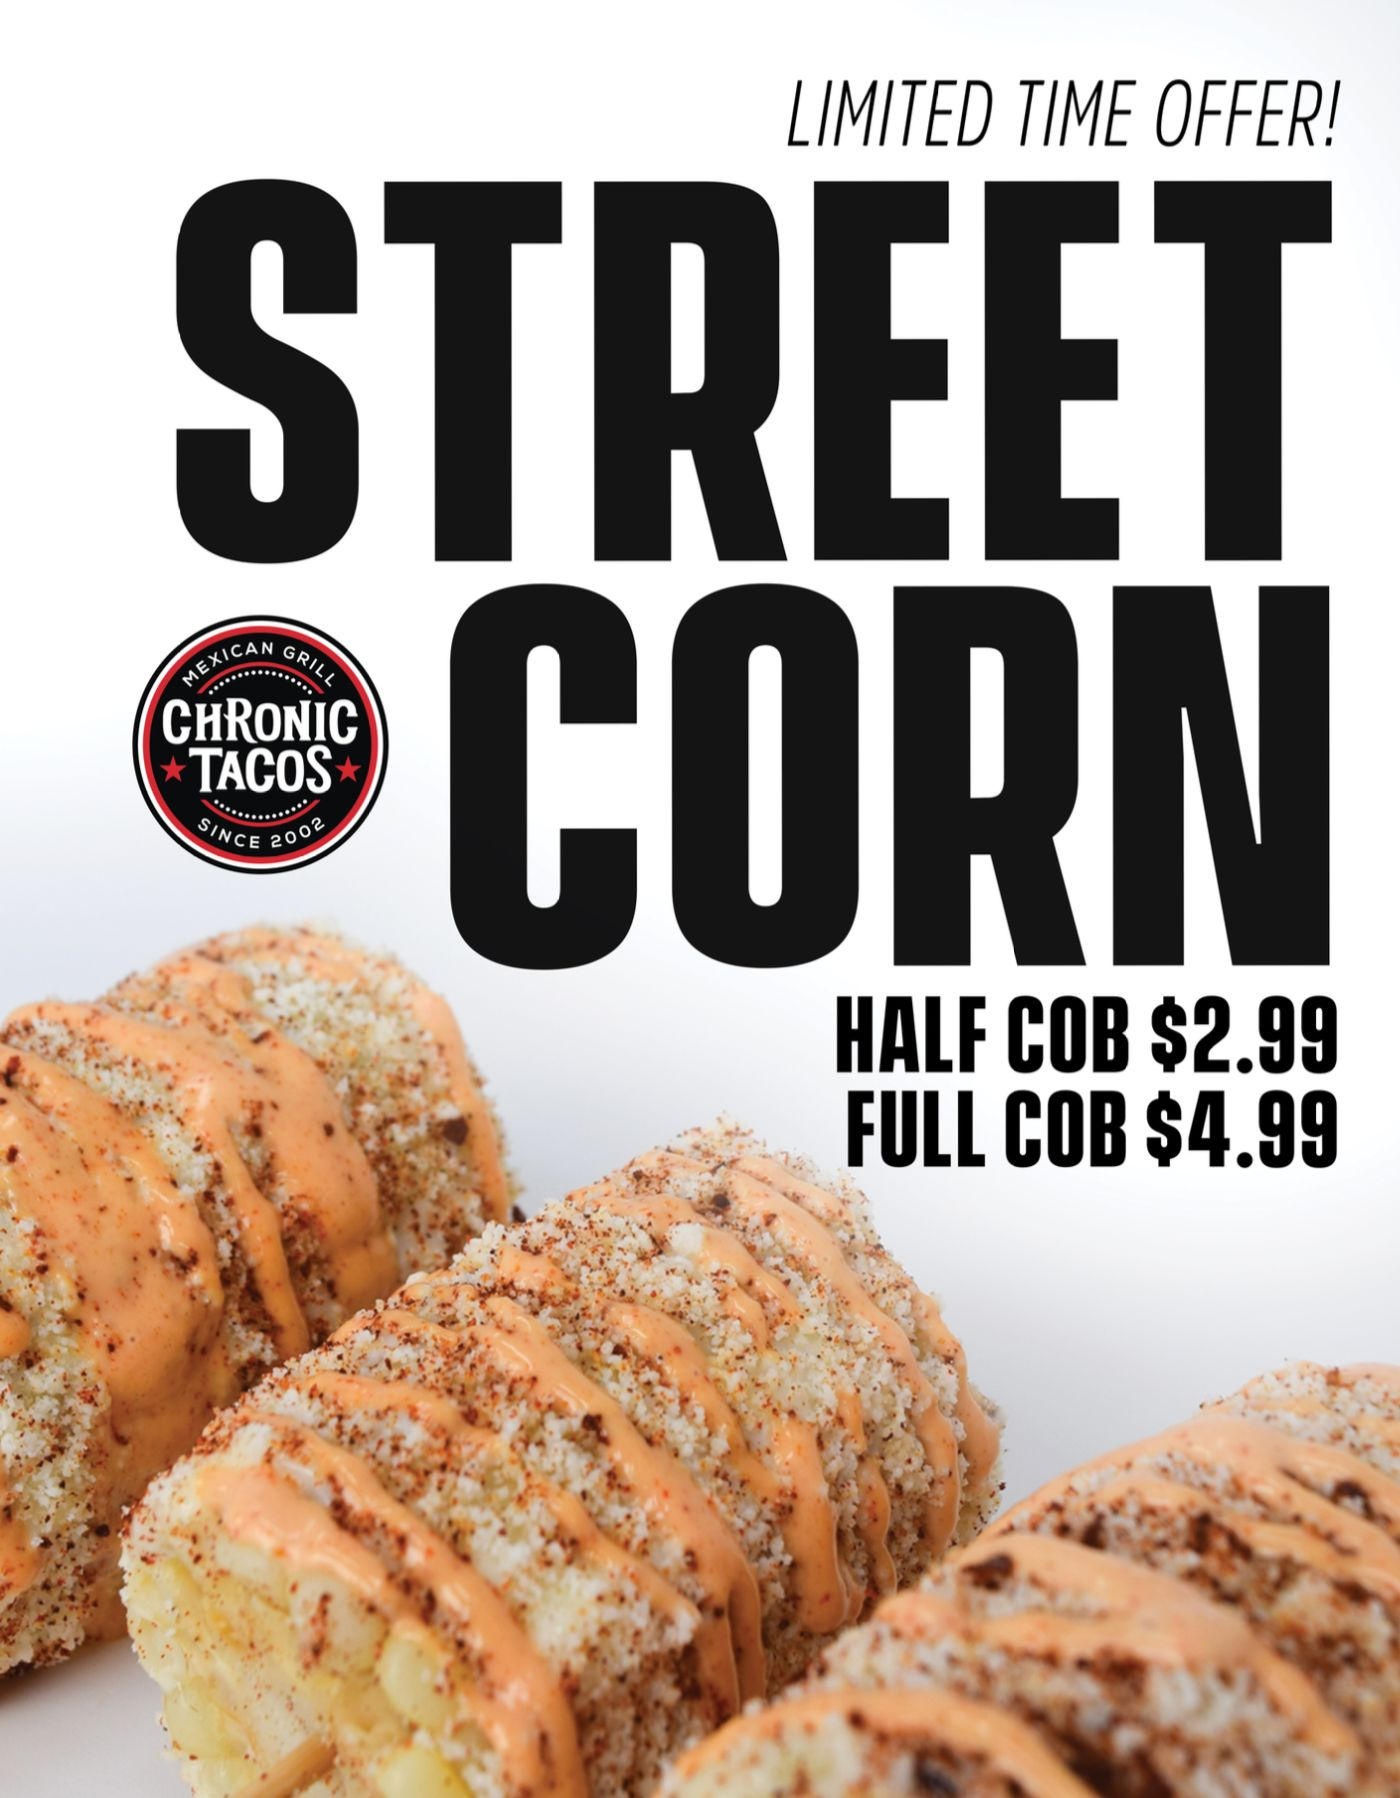 Chronic Tacos Street Corn Returns for a Limited Time